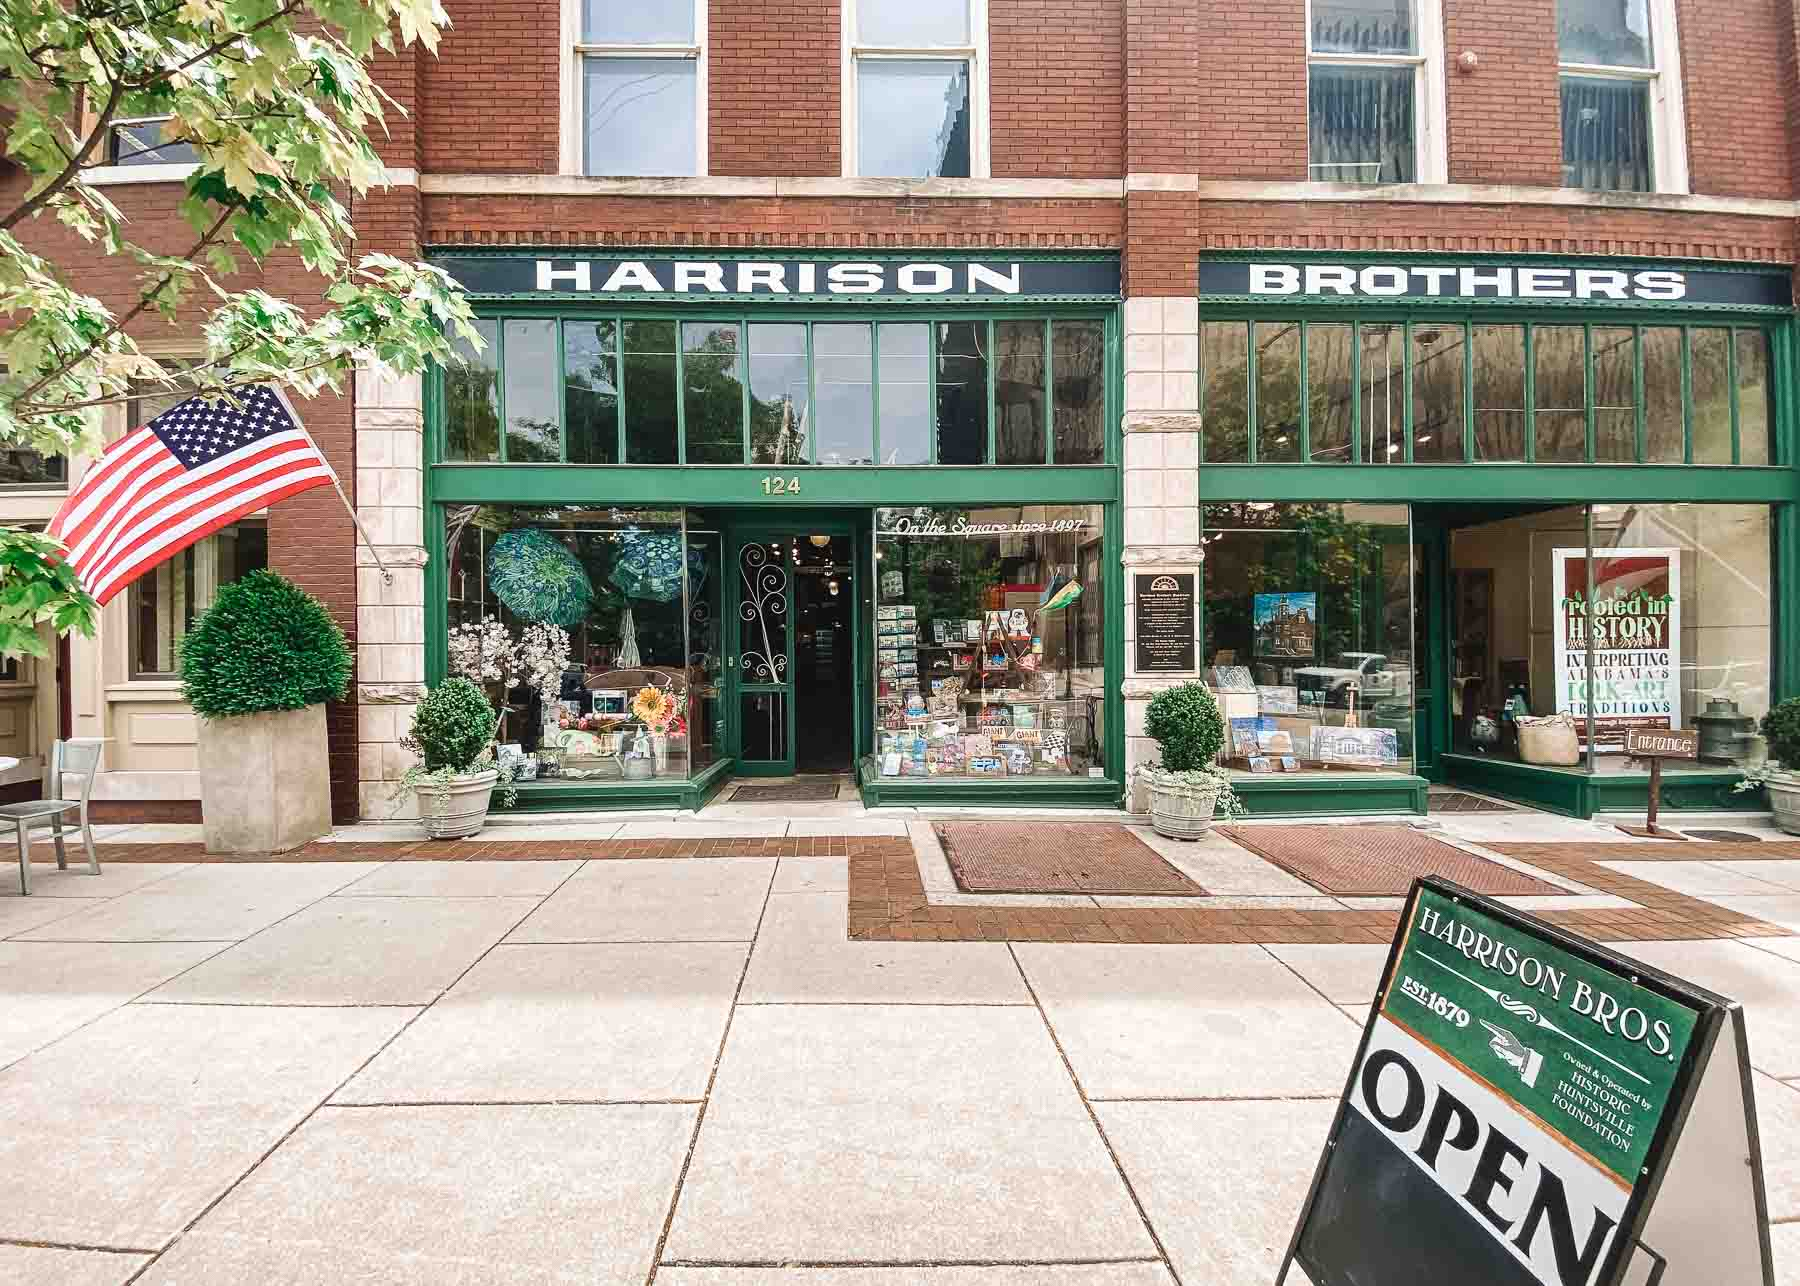 Exterior of building in Huntsville, Alabama with sign that reads Harrison Brothers. There is an American flag hanging on the left.